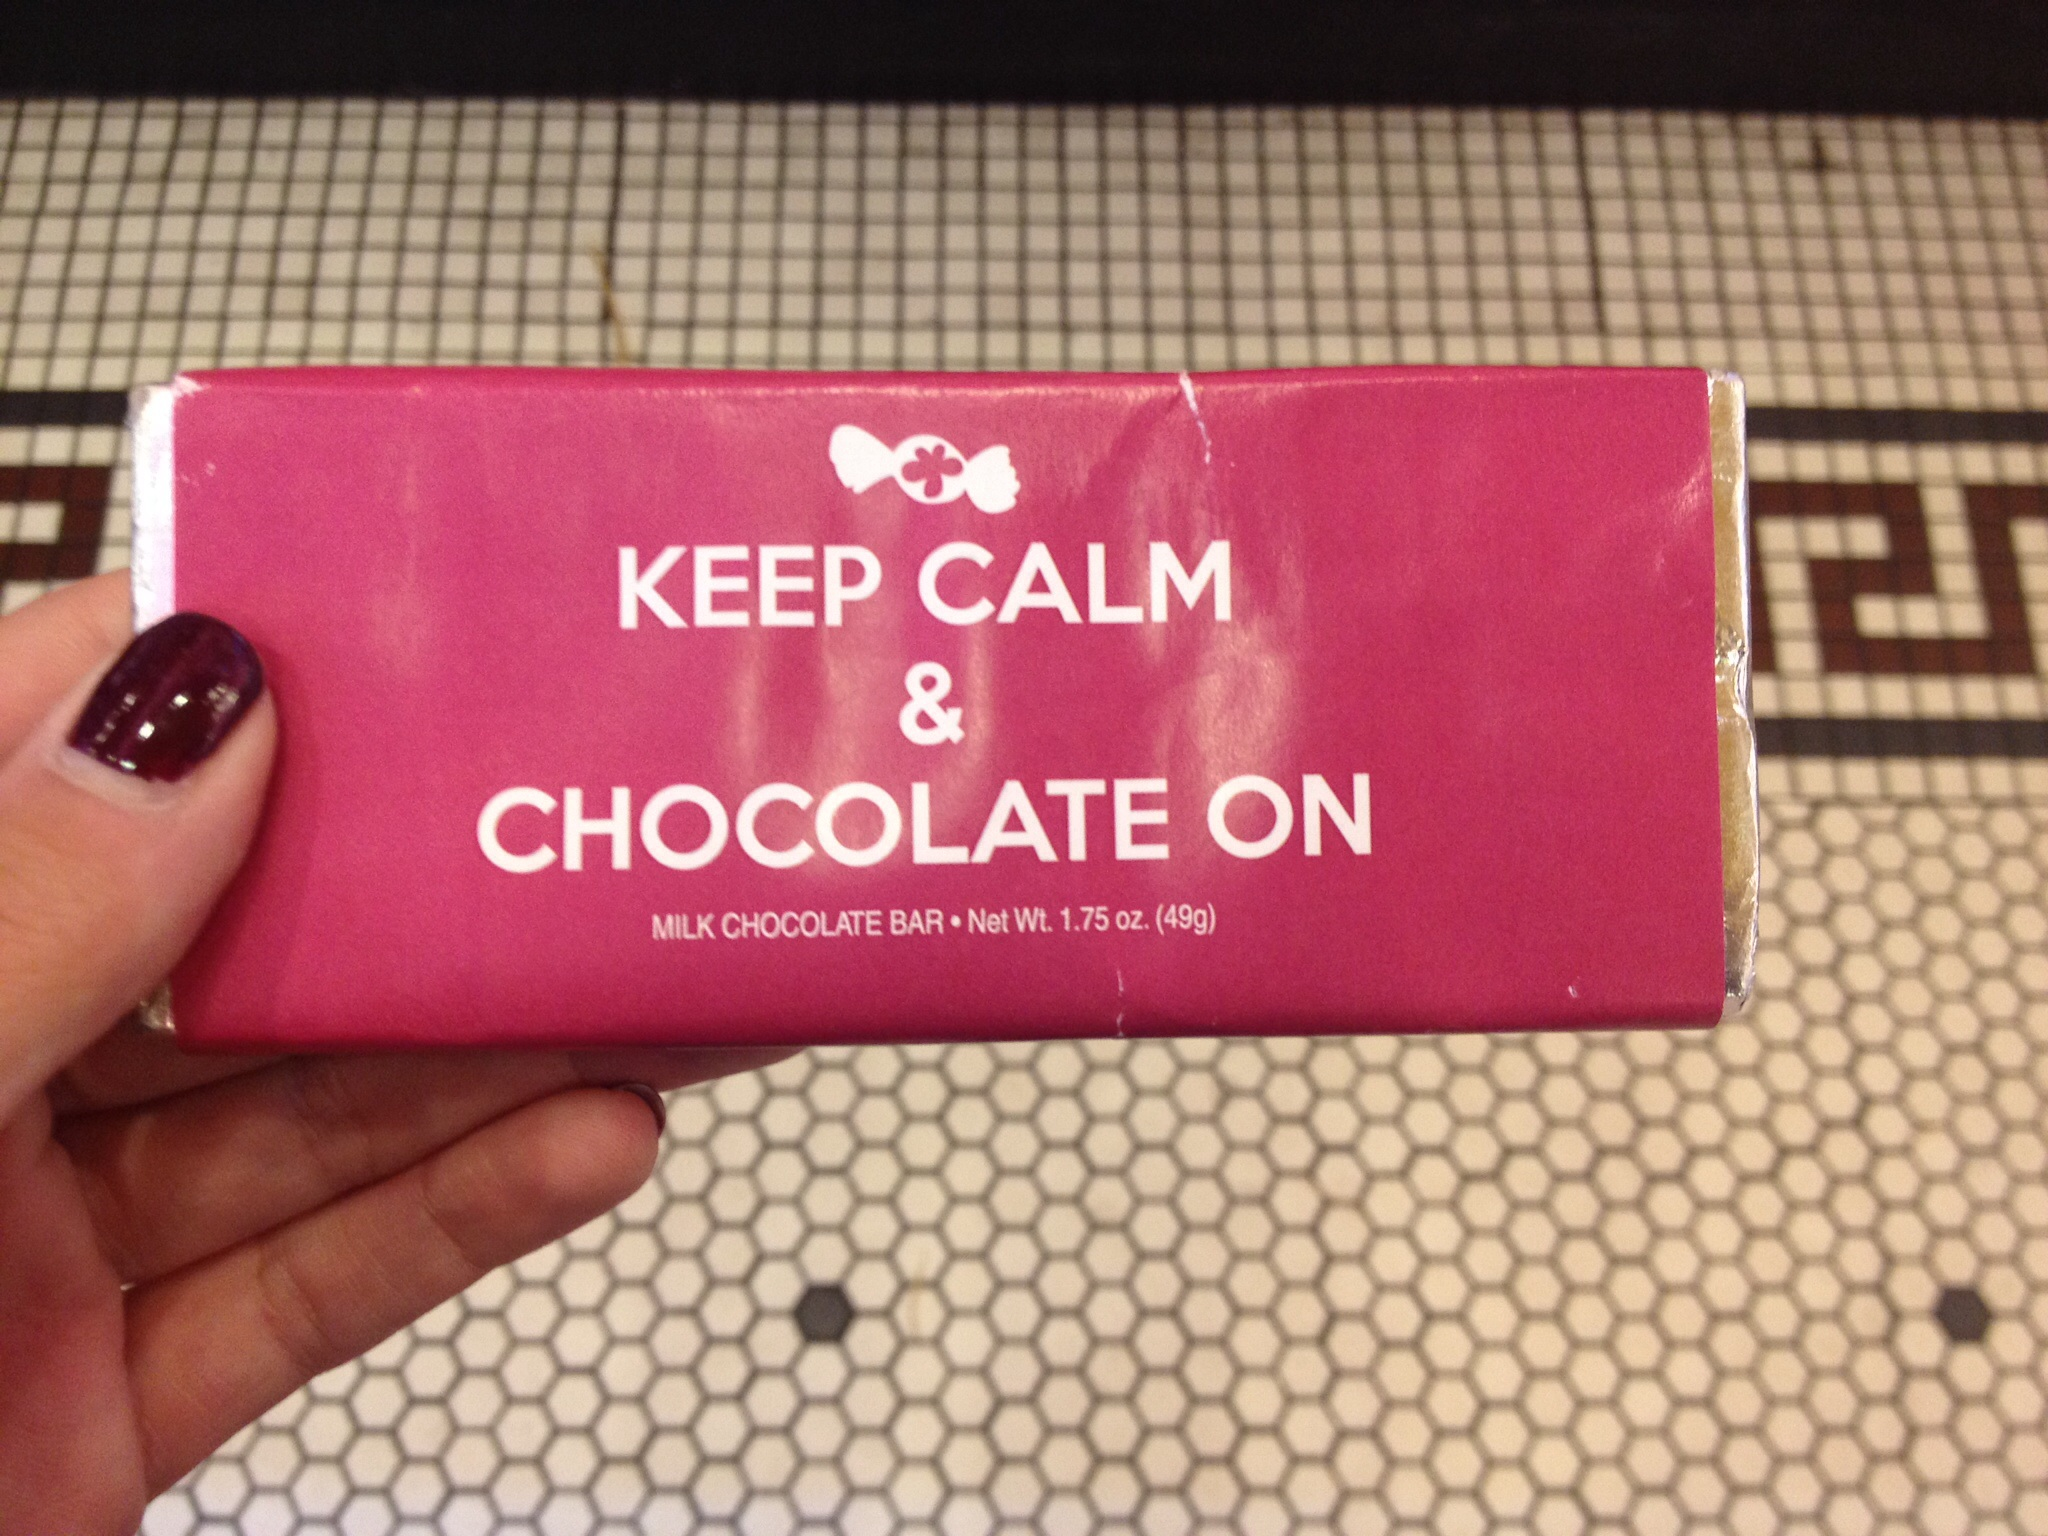 Keep Calm & Chocolate On